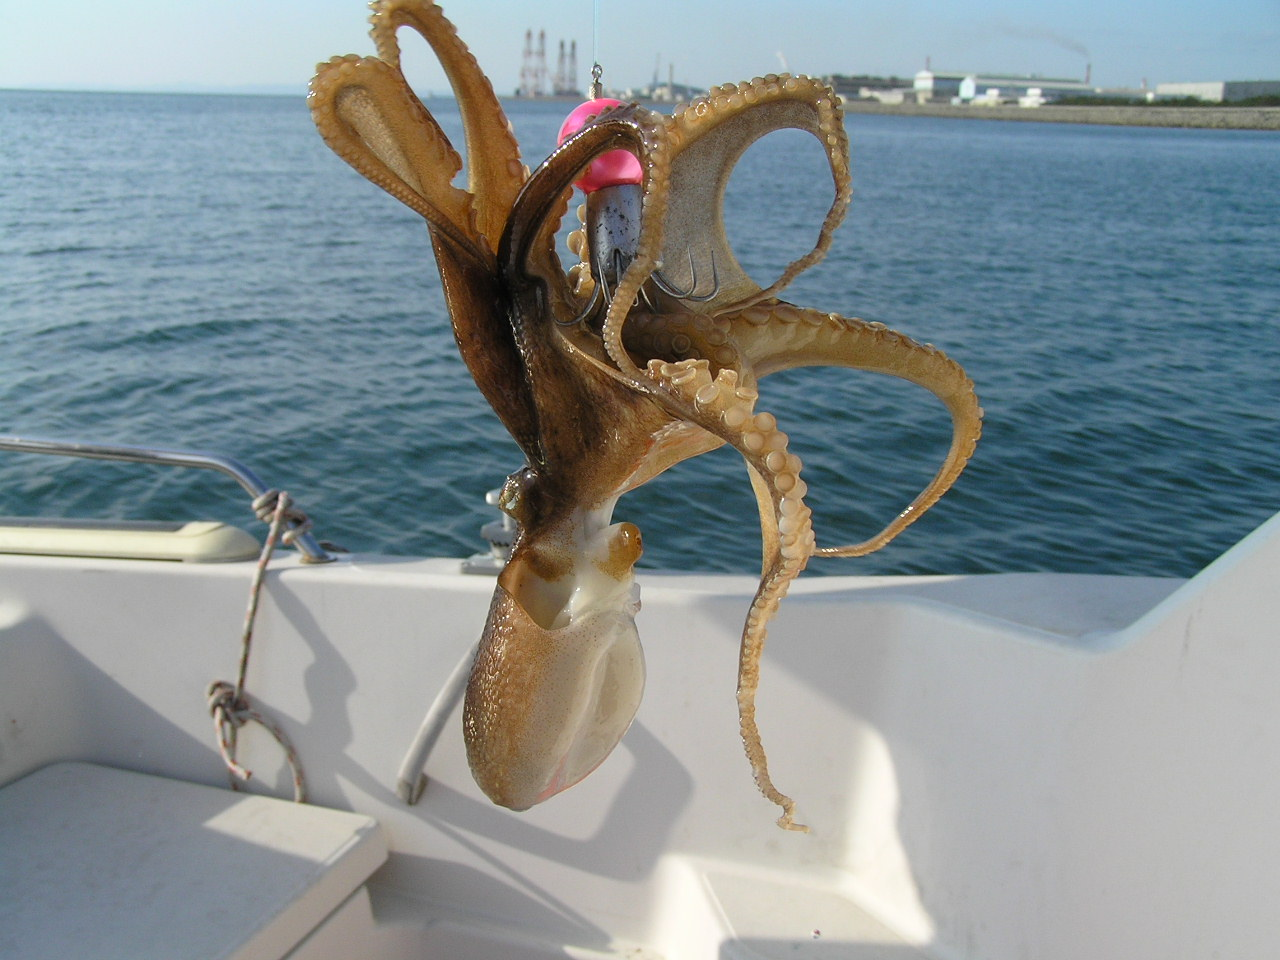 Caribbean Reef Octopus | hubpages